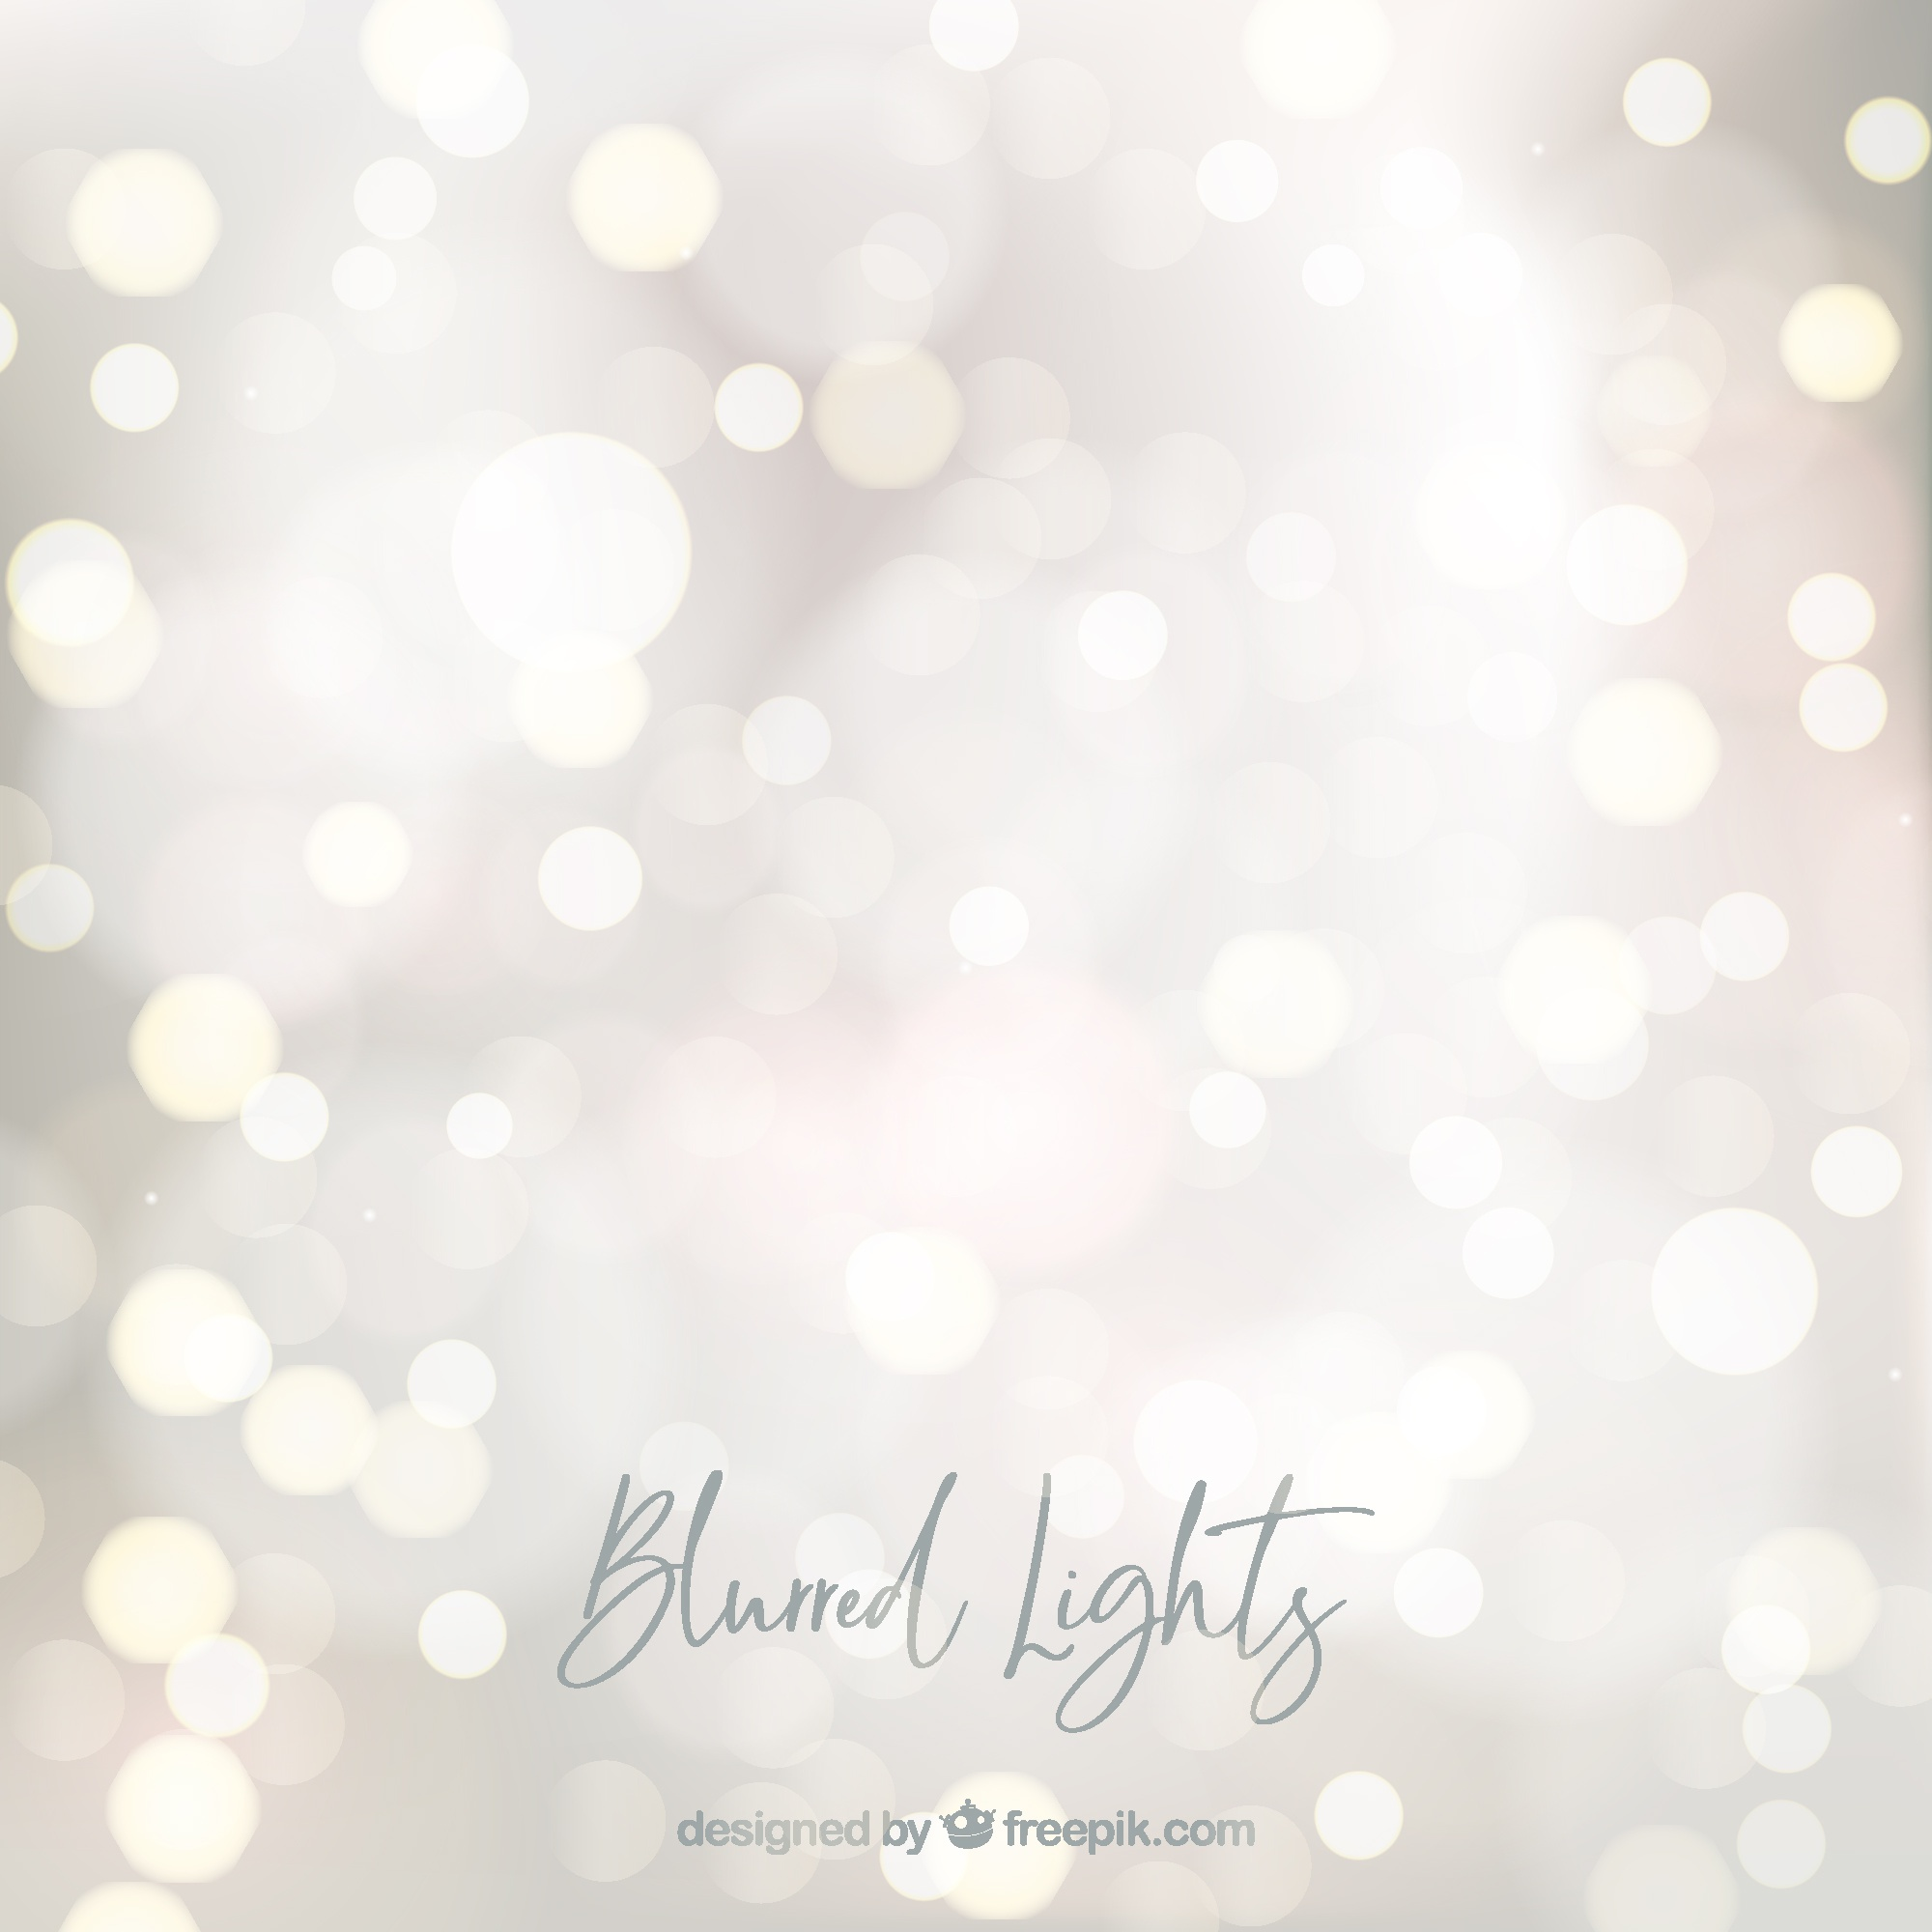 Abstract blurred lights background